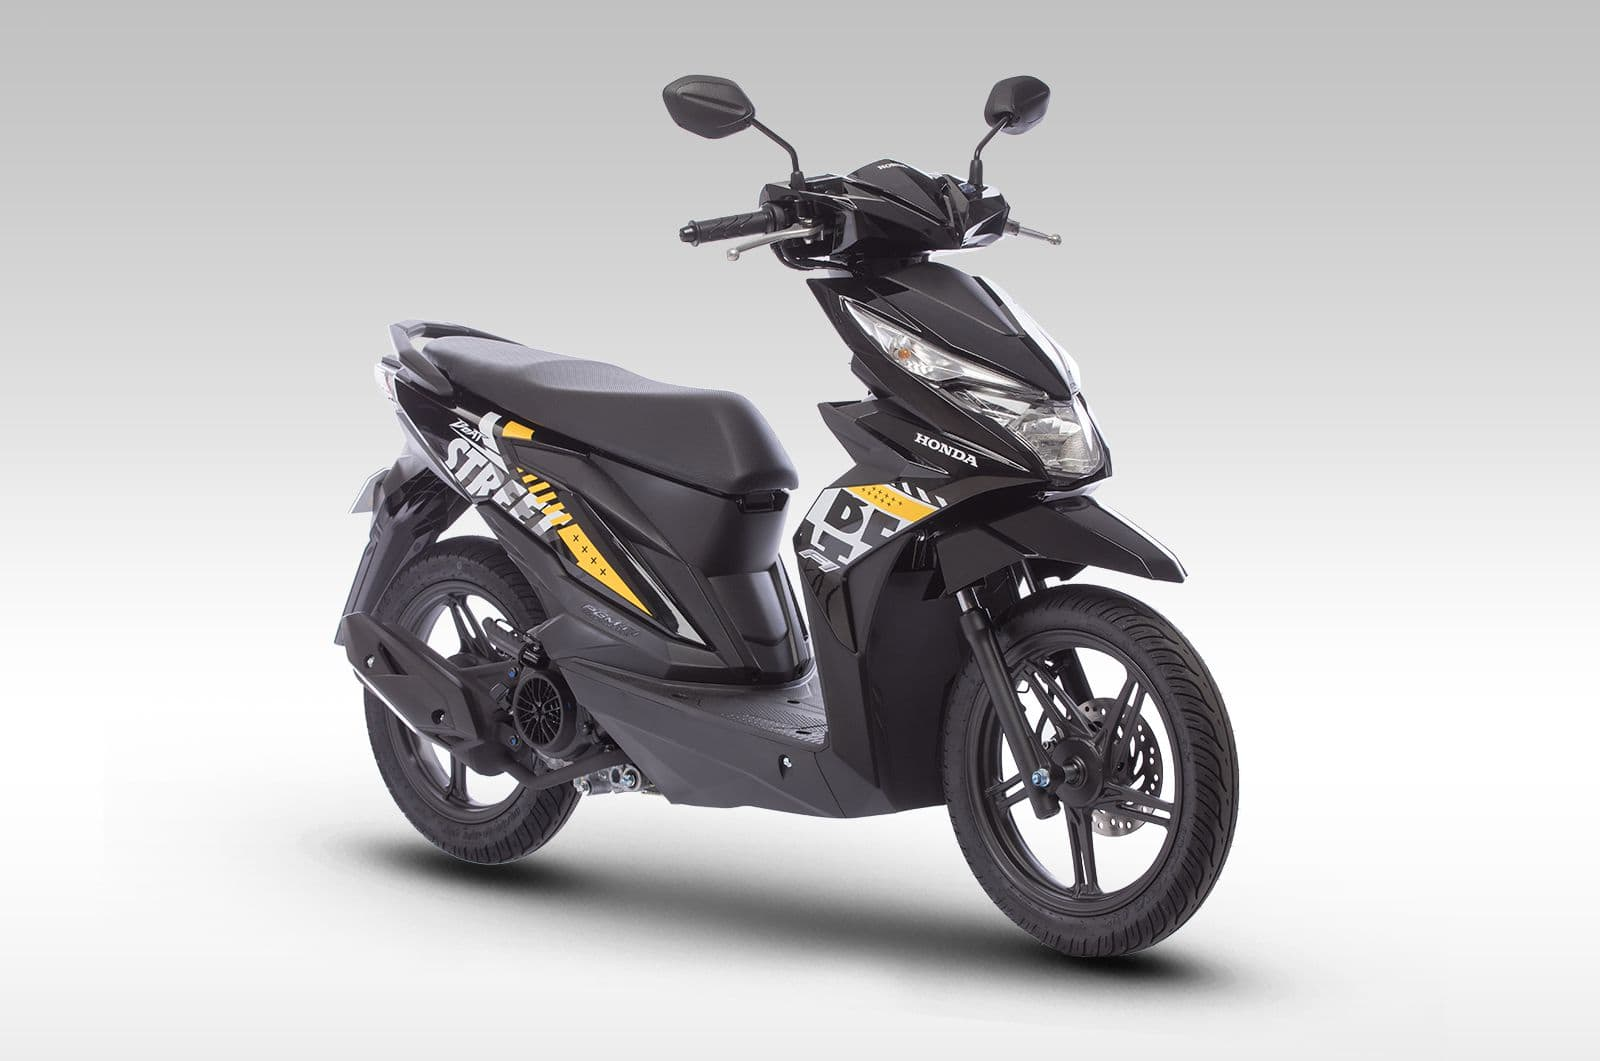 HONDA Beat 110 Fi (Standard) – New